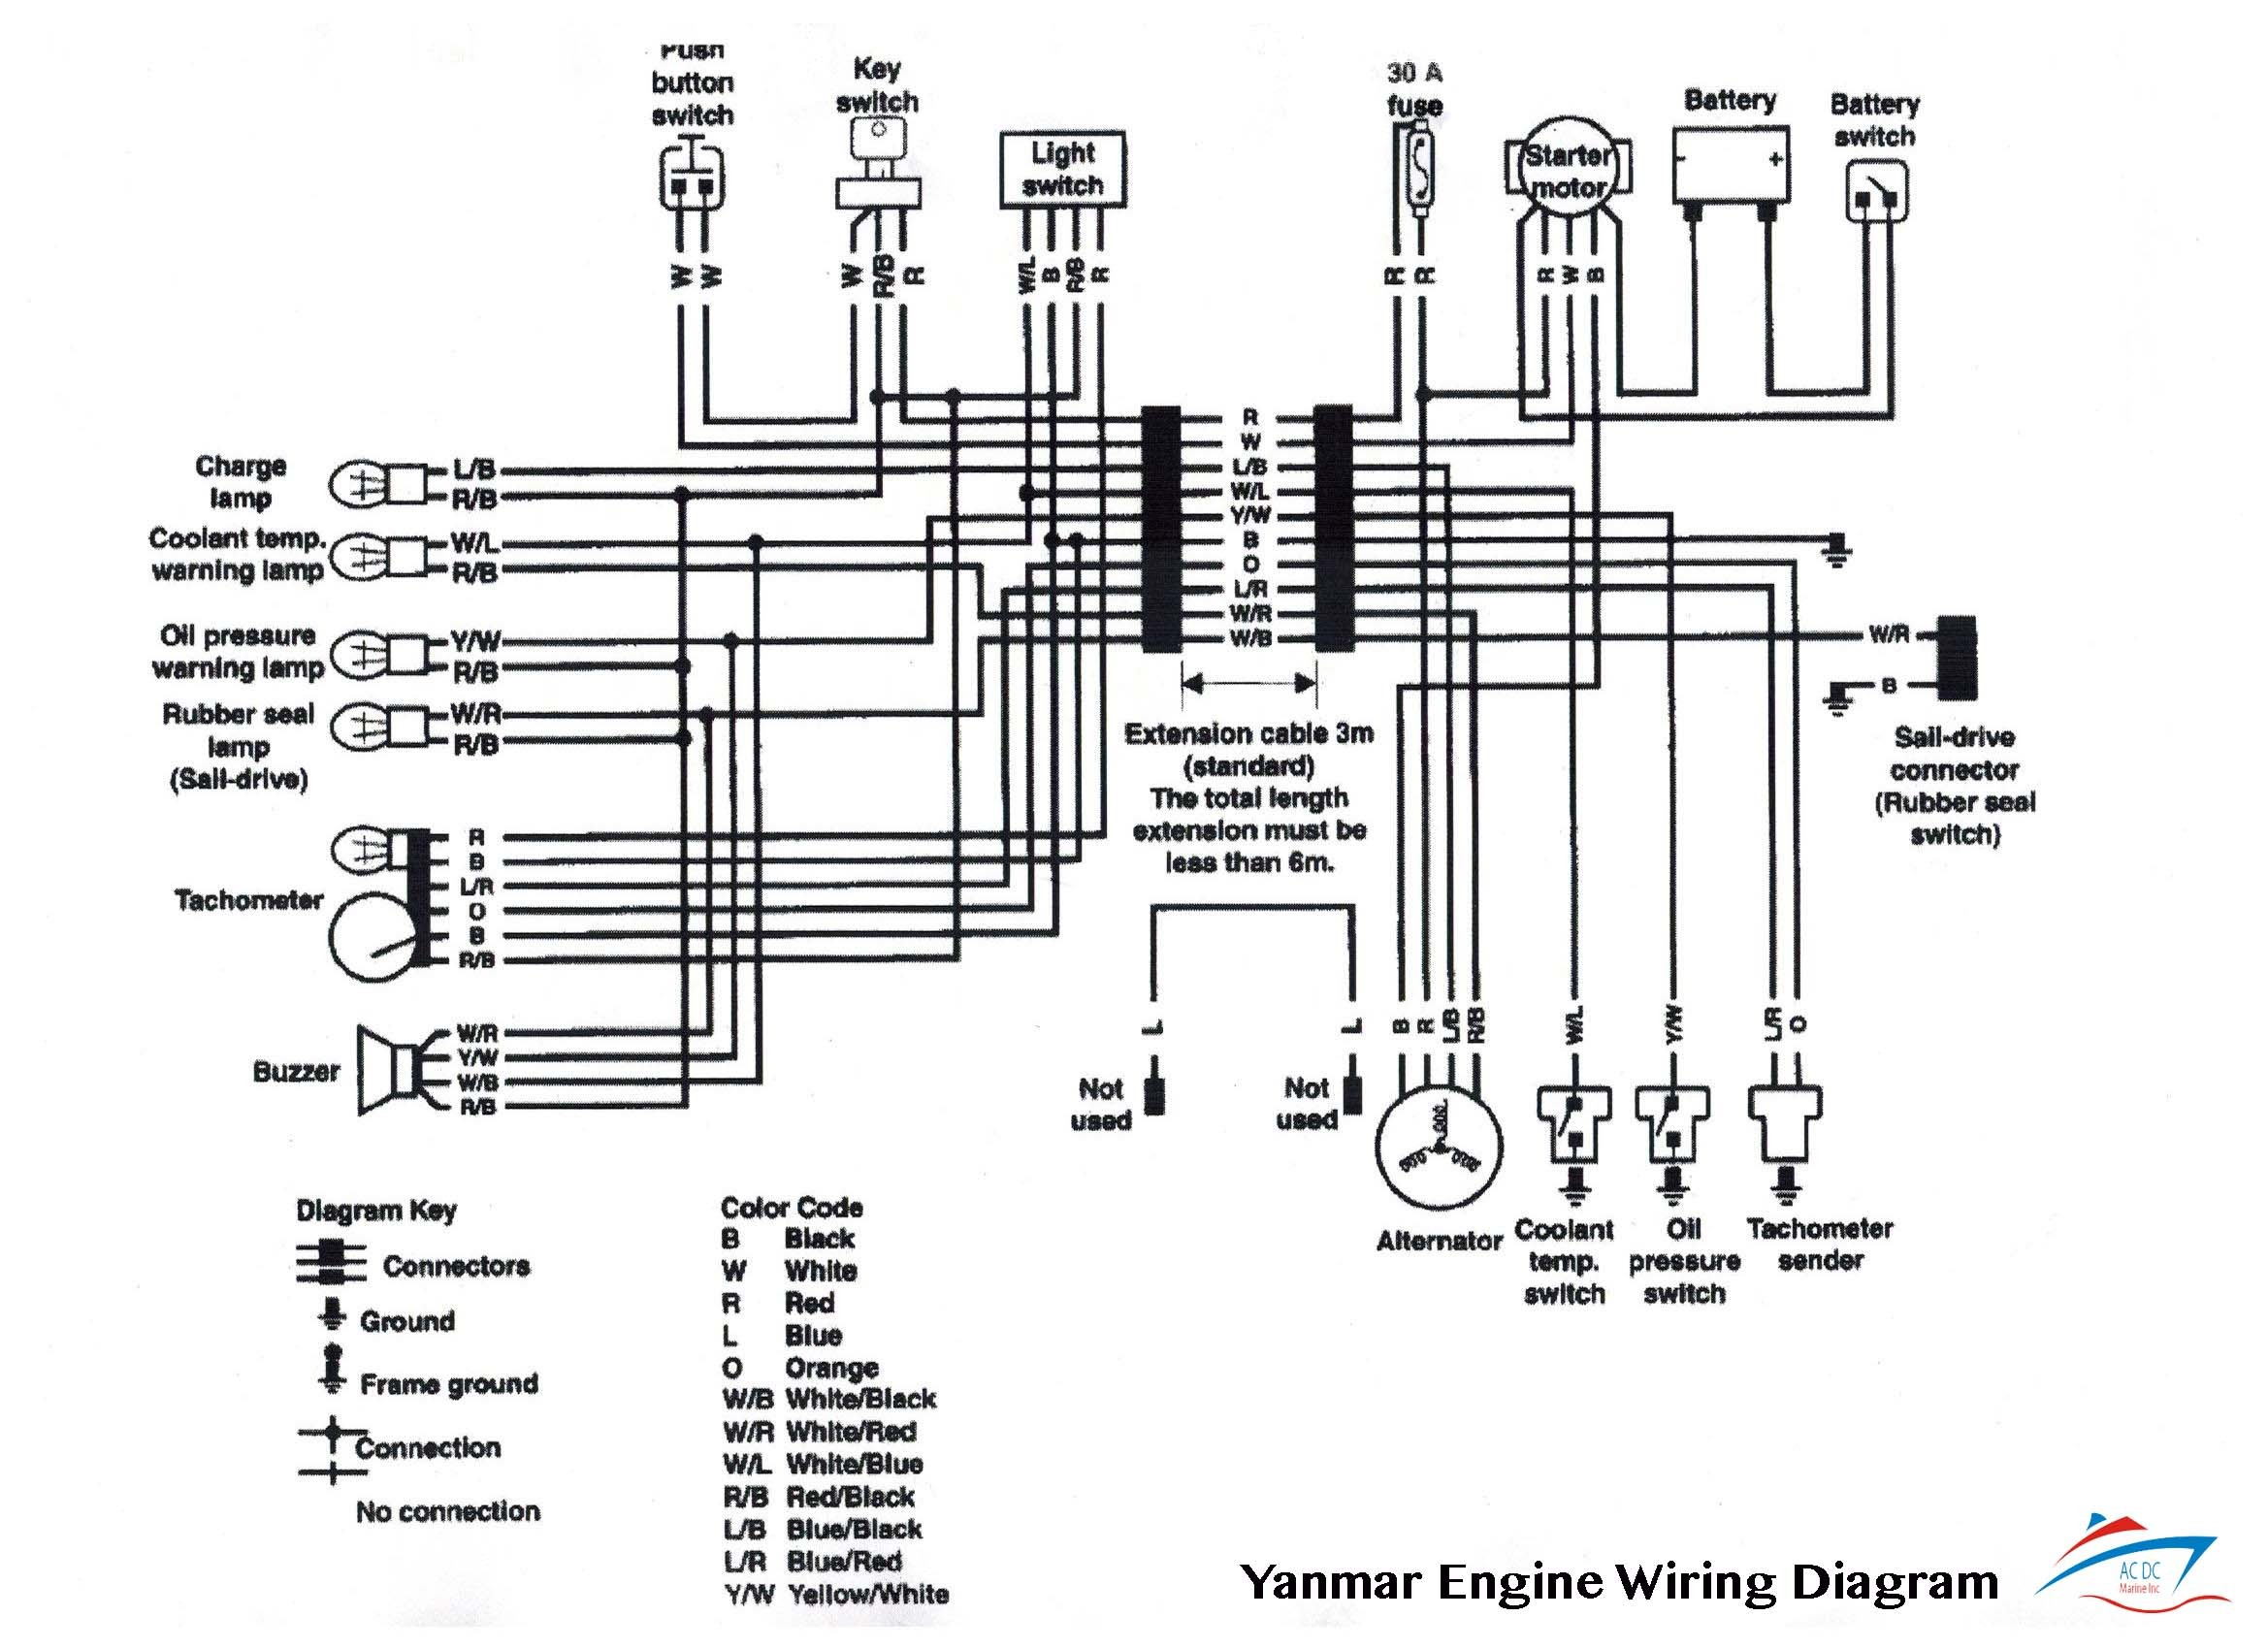 volvo penta marine engine diagram my wiring diagram rh detoxicrecenze com Wartsilla Marine Engine Marine Engine Design